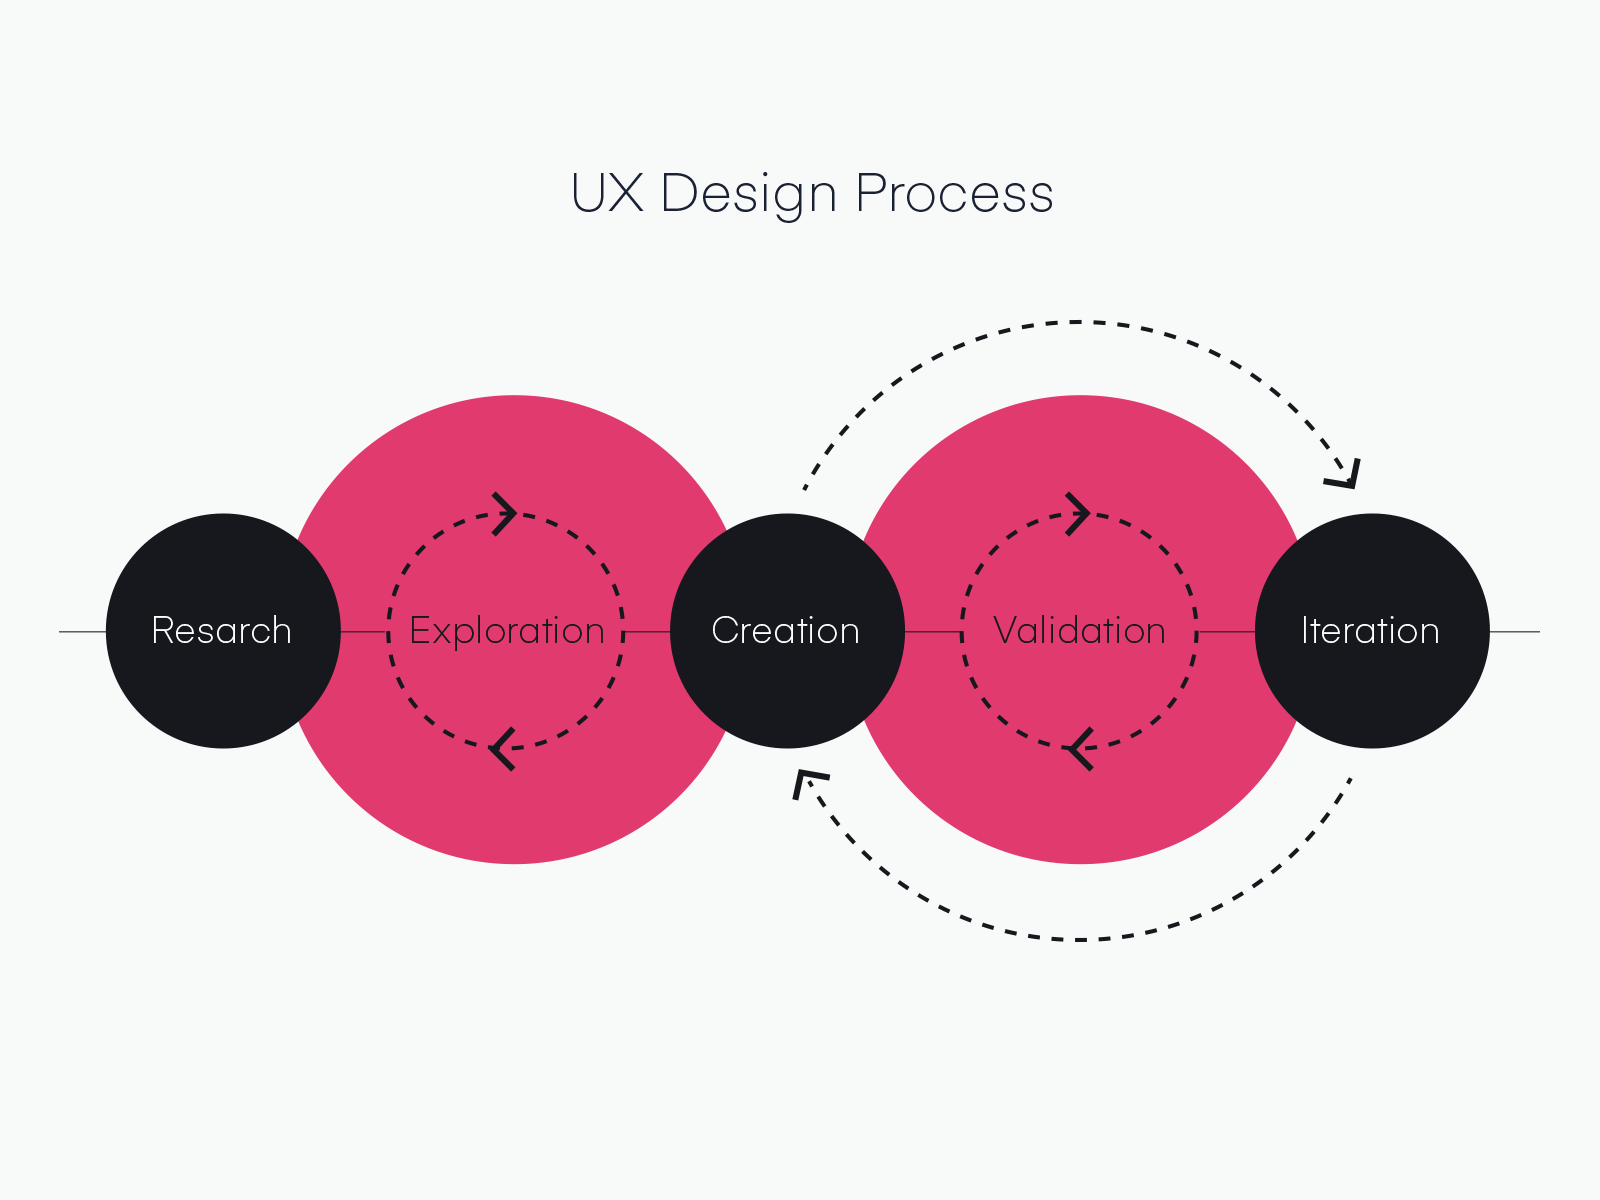 Ux Design Design Defined Invision